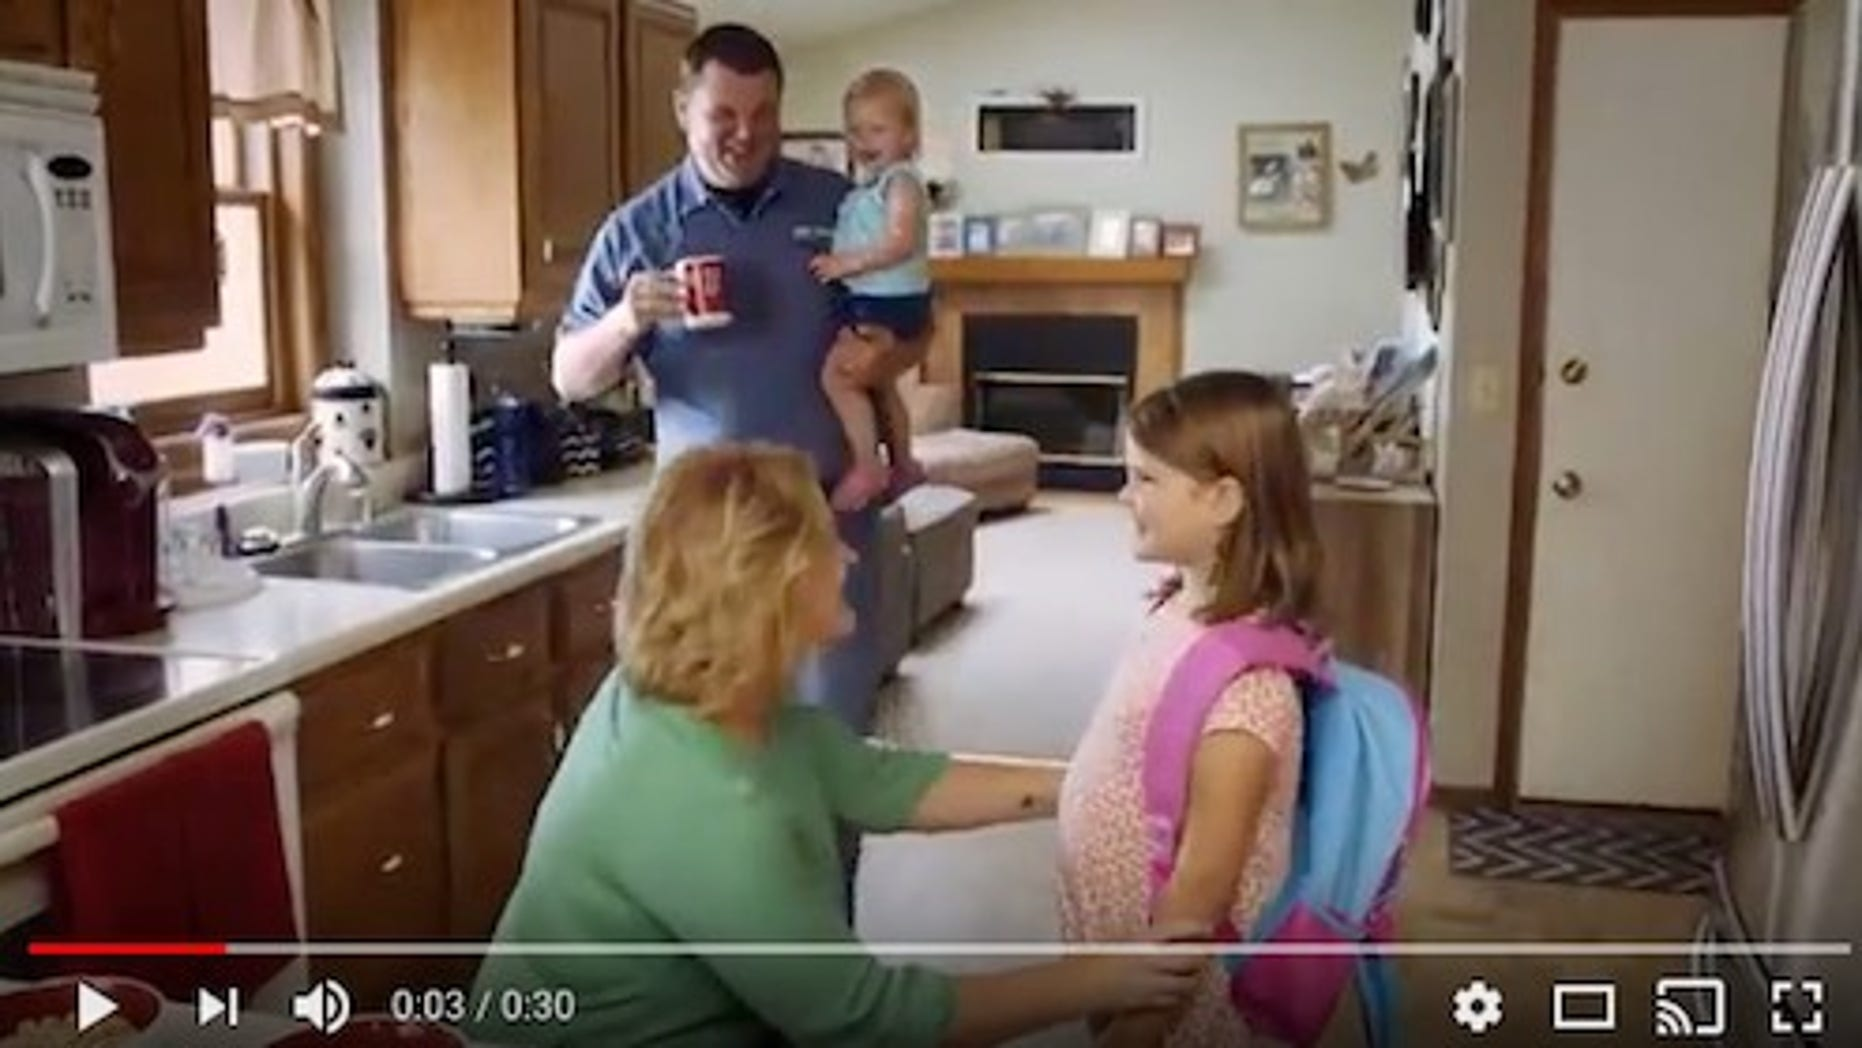 Jim and Lindsay Pratt of Jefferson, Wisconsin, are featured in the TV ad spotlighting the tax code.